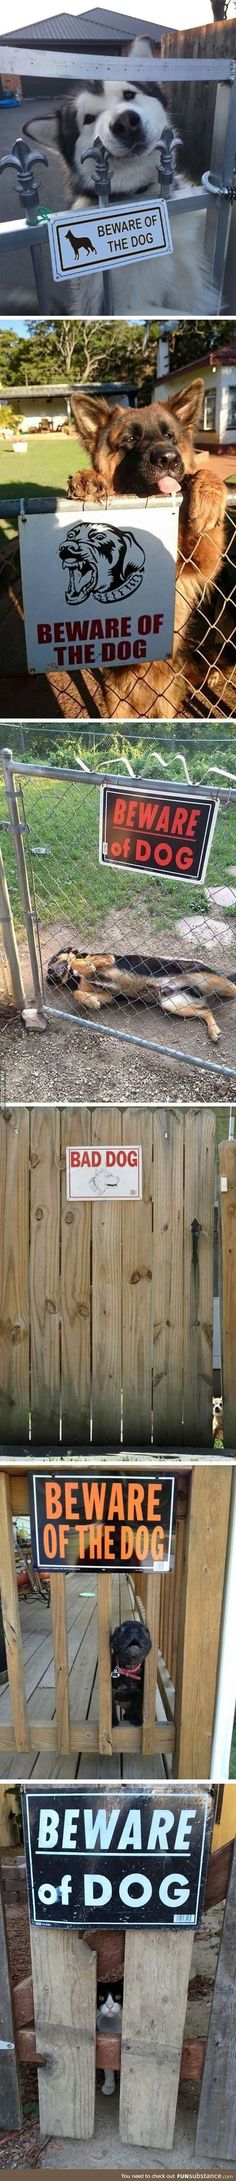 Beware of the dog,jajaja too cute to be true - - Lustig - dog funny dog funny funny aesthetic funny hilarious funny sleeping Cute Funny Animals, Funny Animal Pictures, Funny Cute, Funny Dogs, Funny Memes, Hilarious, Pet Memes, Scary Funny, Animals And Pets